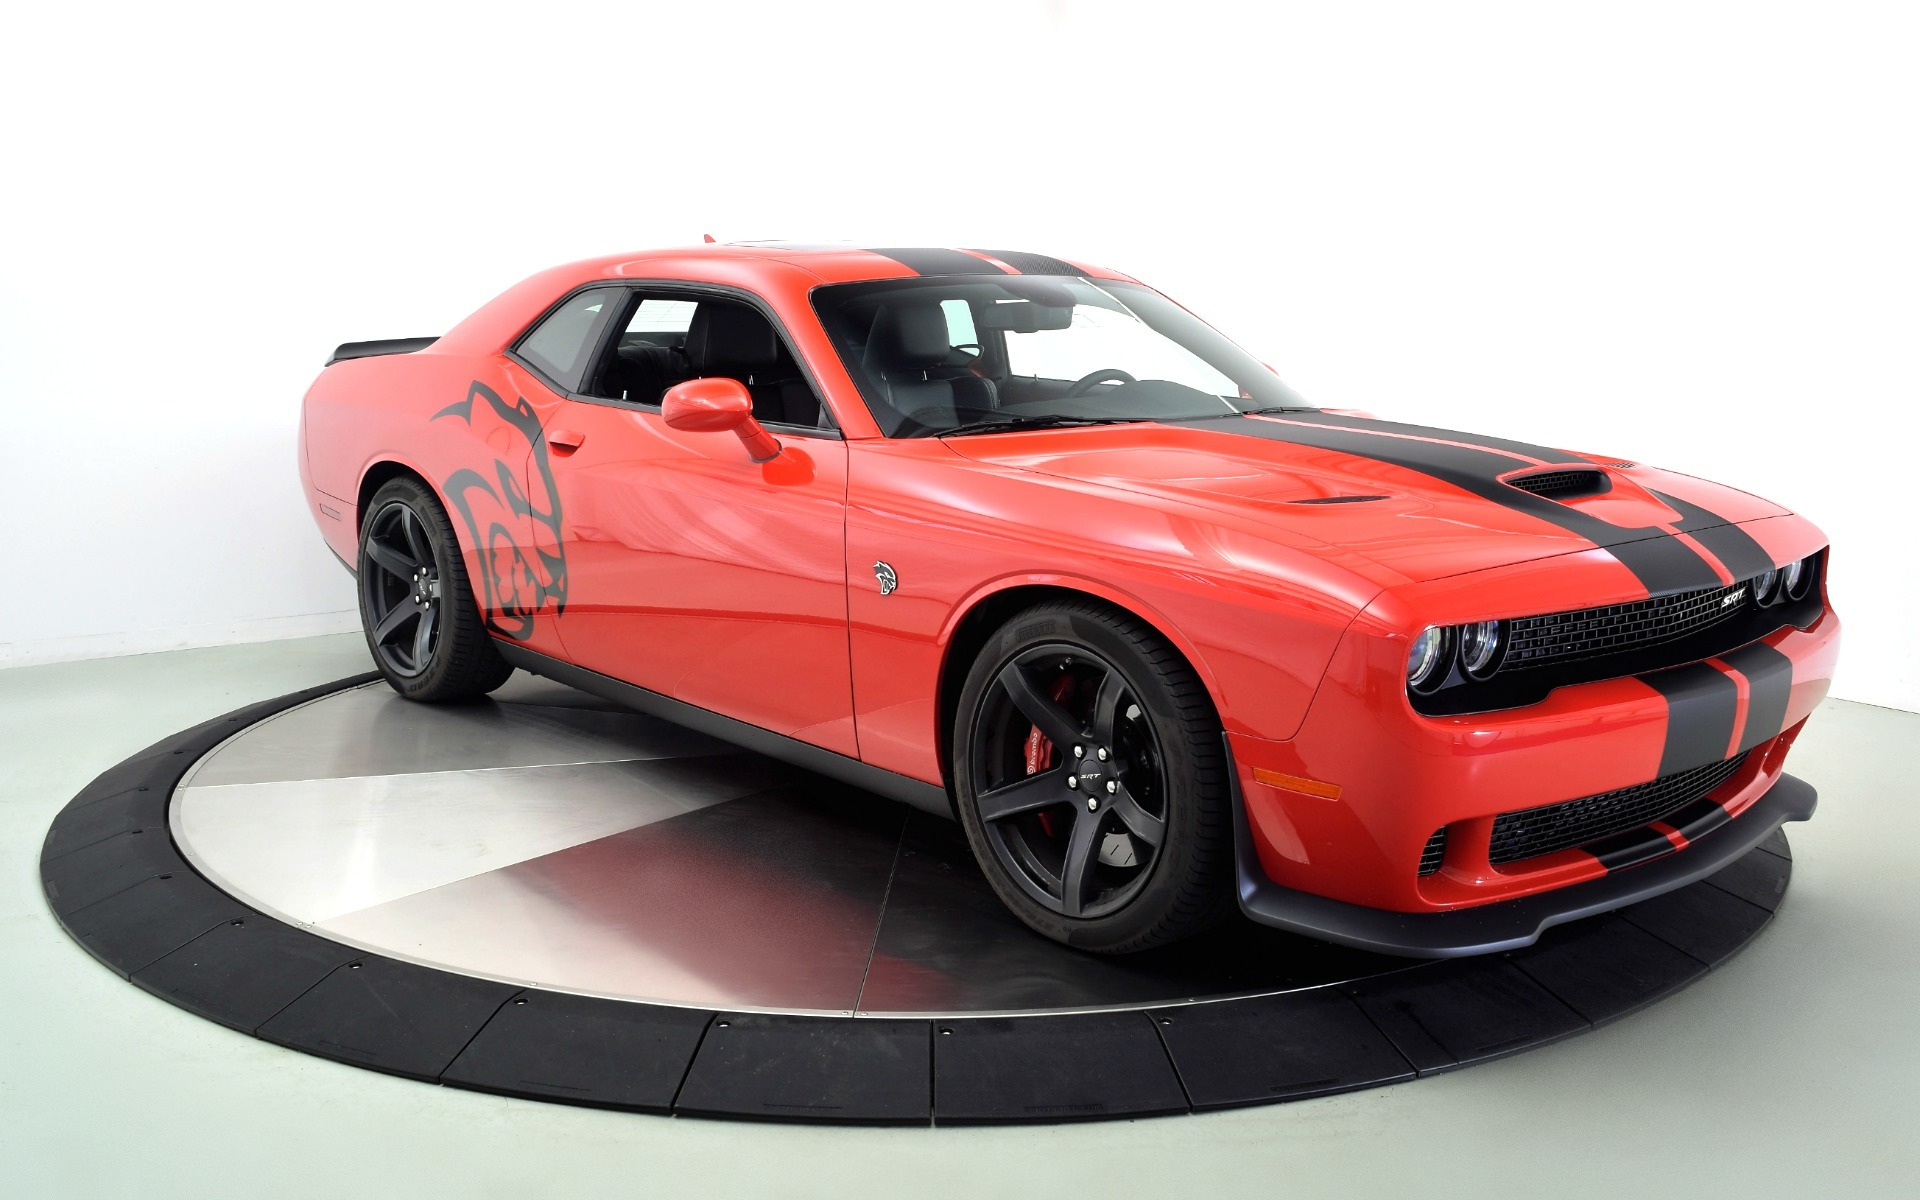 Hellcat Challenger For Sale >> 2017 DODGE CHALLENGER SRT Hellcat For Sale in Norwell, MA ...